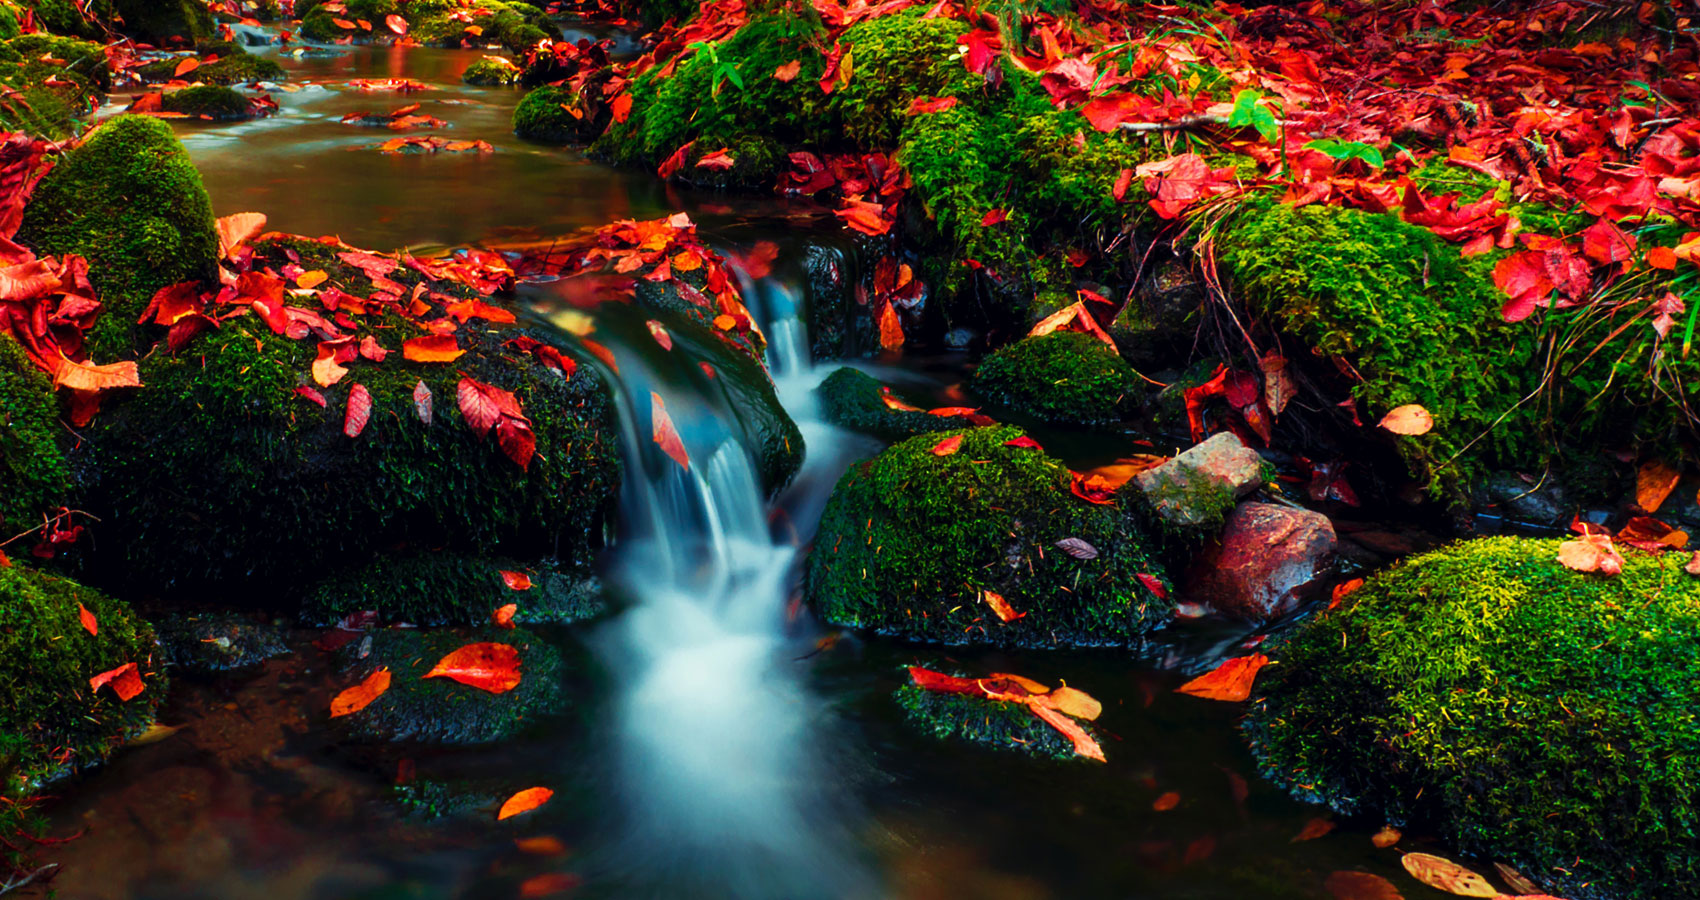 Rivers of Gold, poetry written by CJ Delous at Spillwords.com